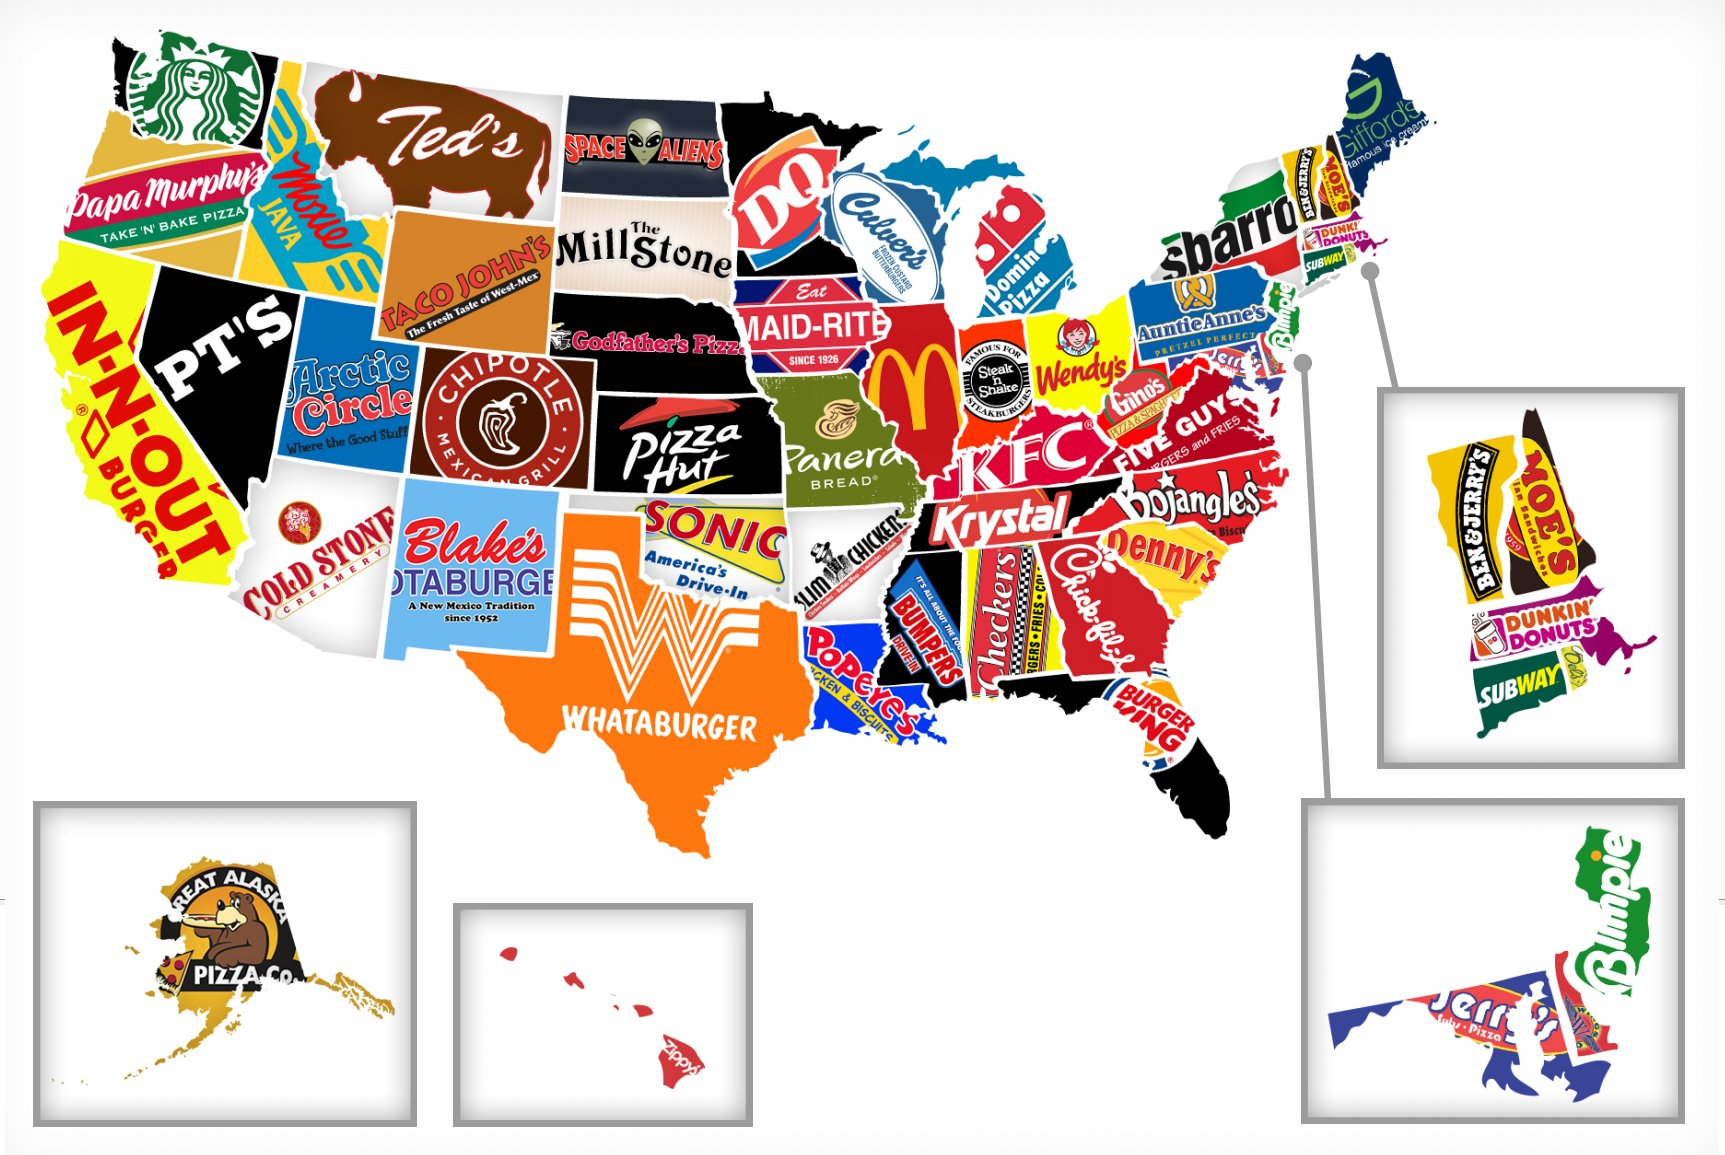 Iconic Brands by State | Playing in the World Game